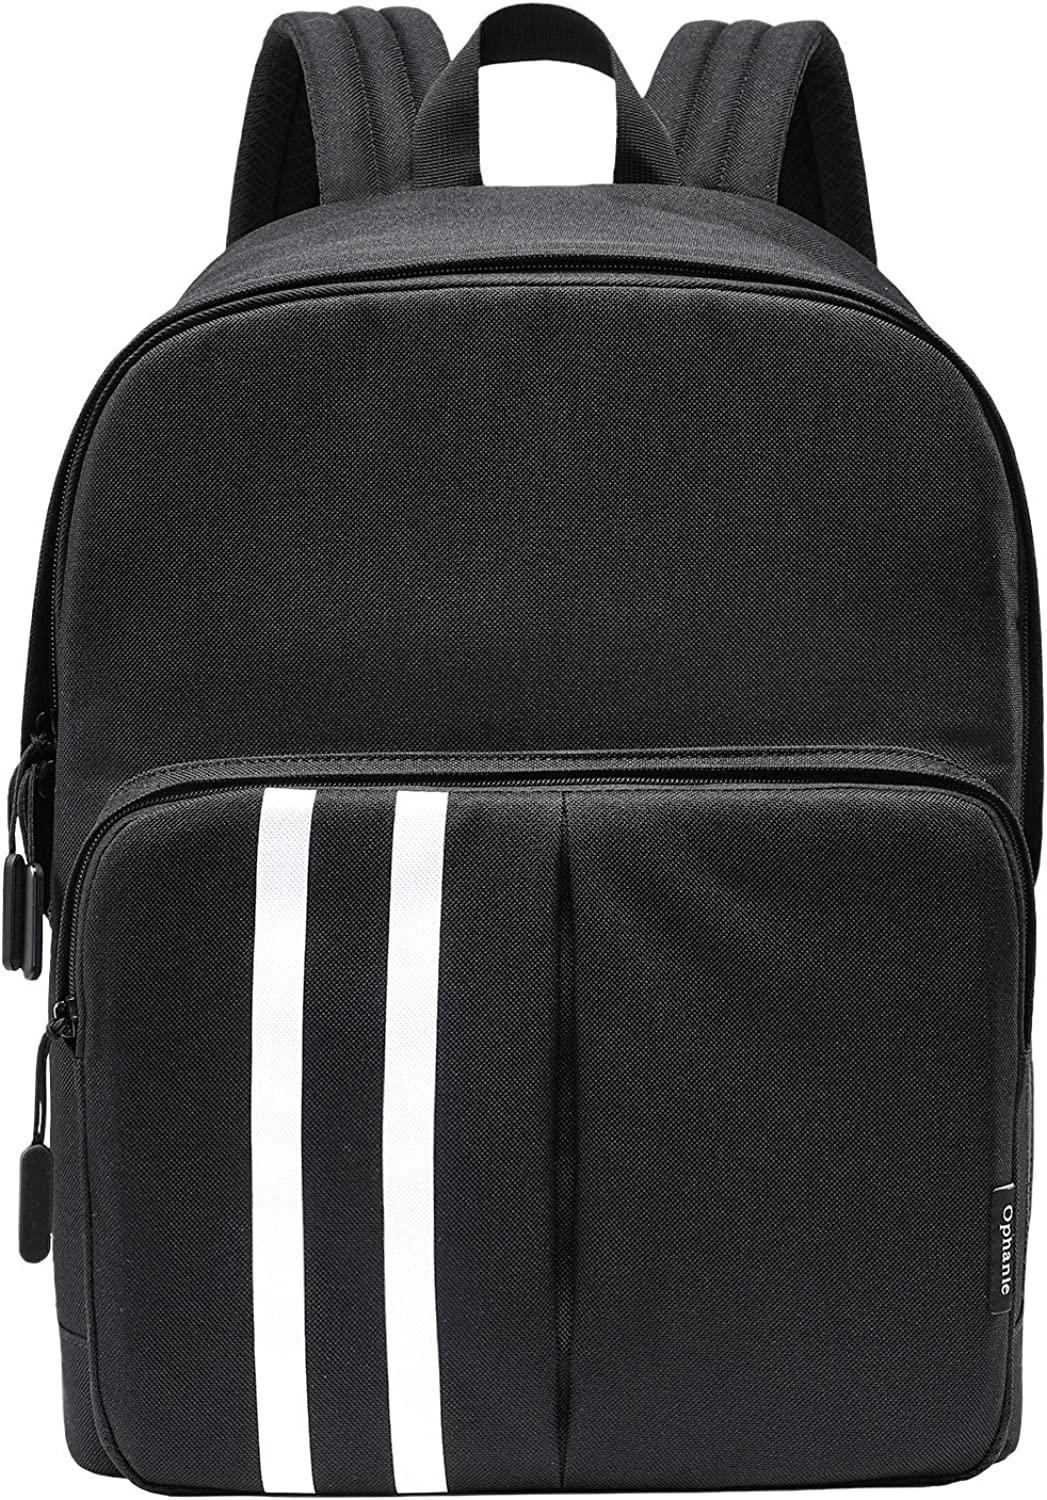 Ophanie Backpack for Girls&Boys, 15.6 Inch Laptop Backpack for School, Travelling or Work